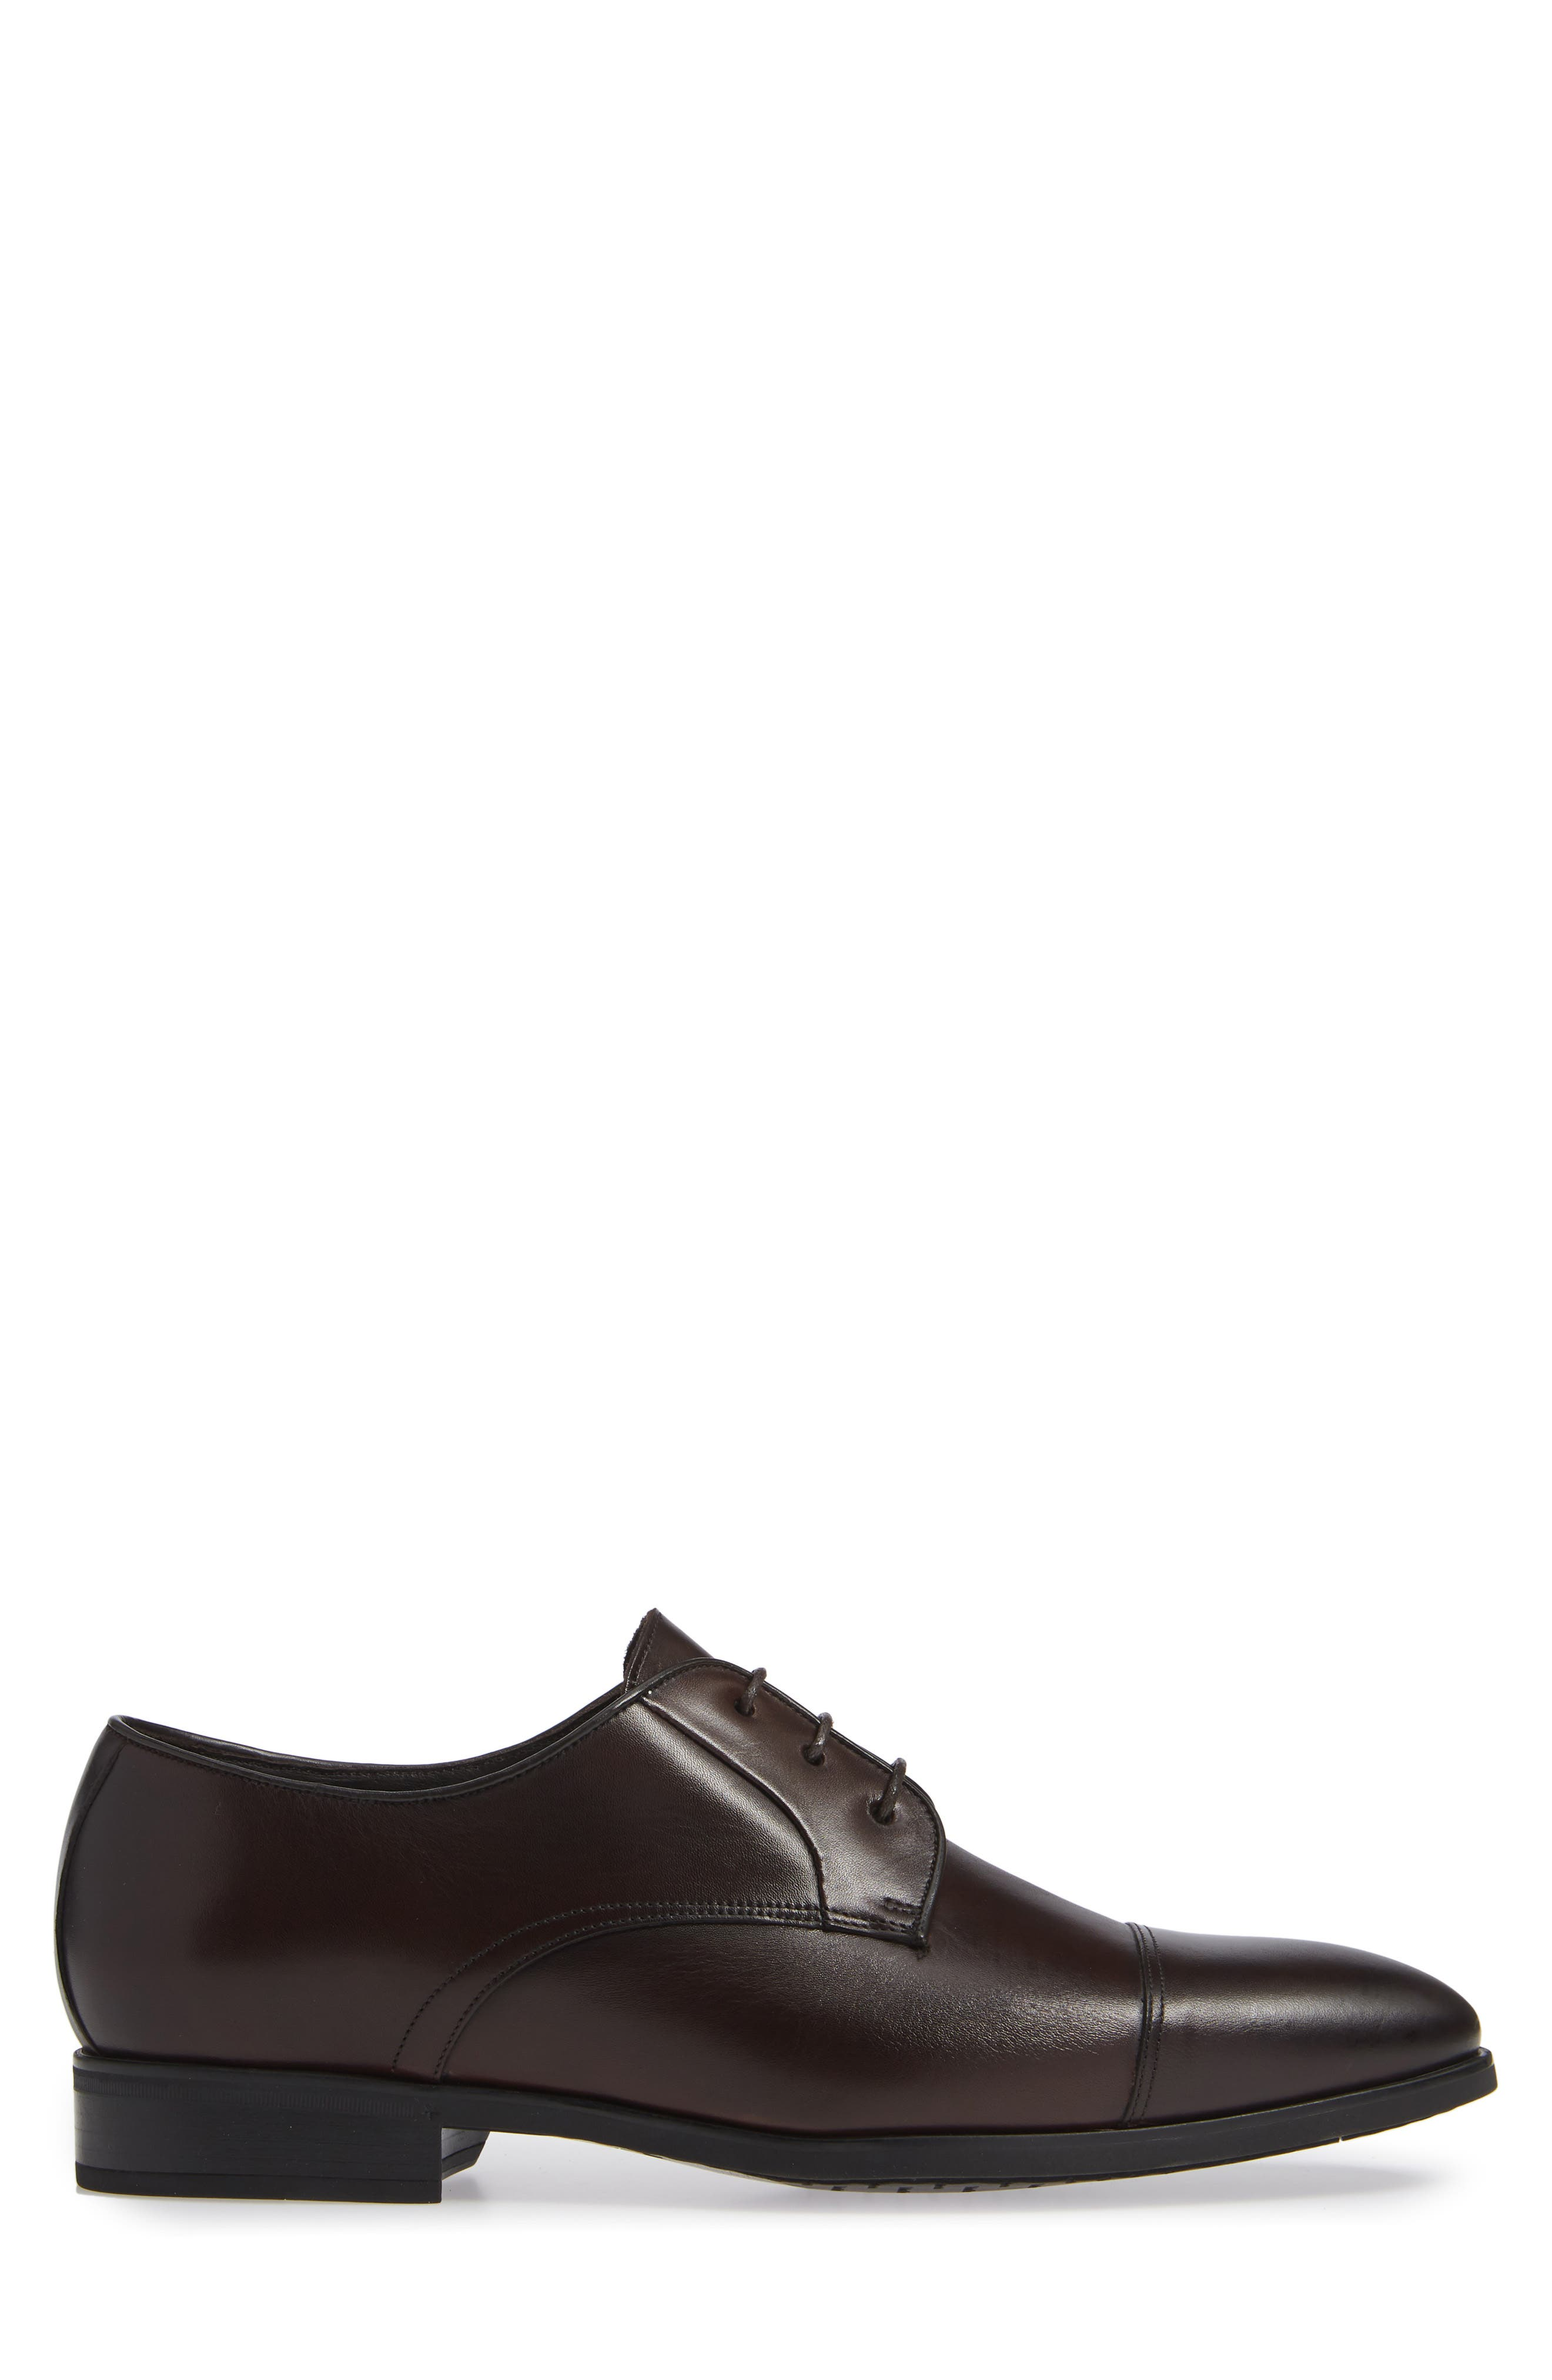 Aberdeen Cap Toe Derby,                             Alternate thumbnail 3, color,                             BERRY/ TMORO LEATHER